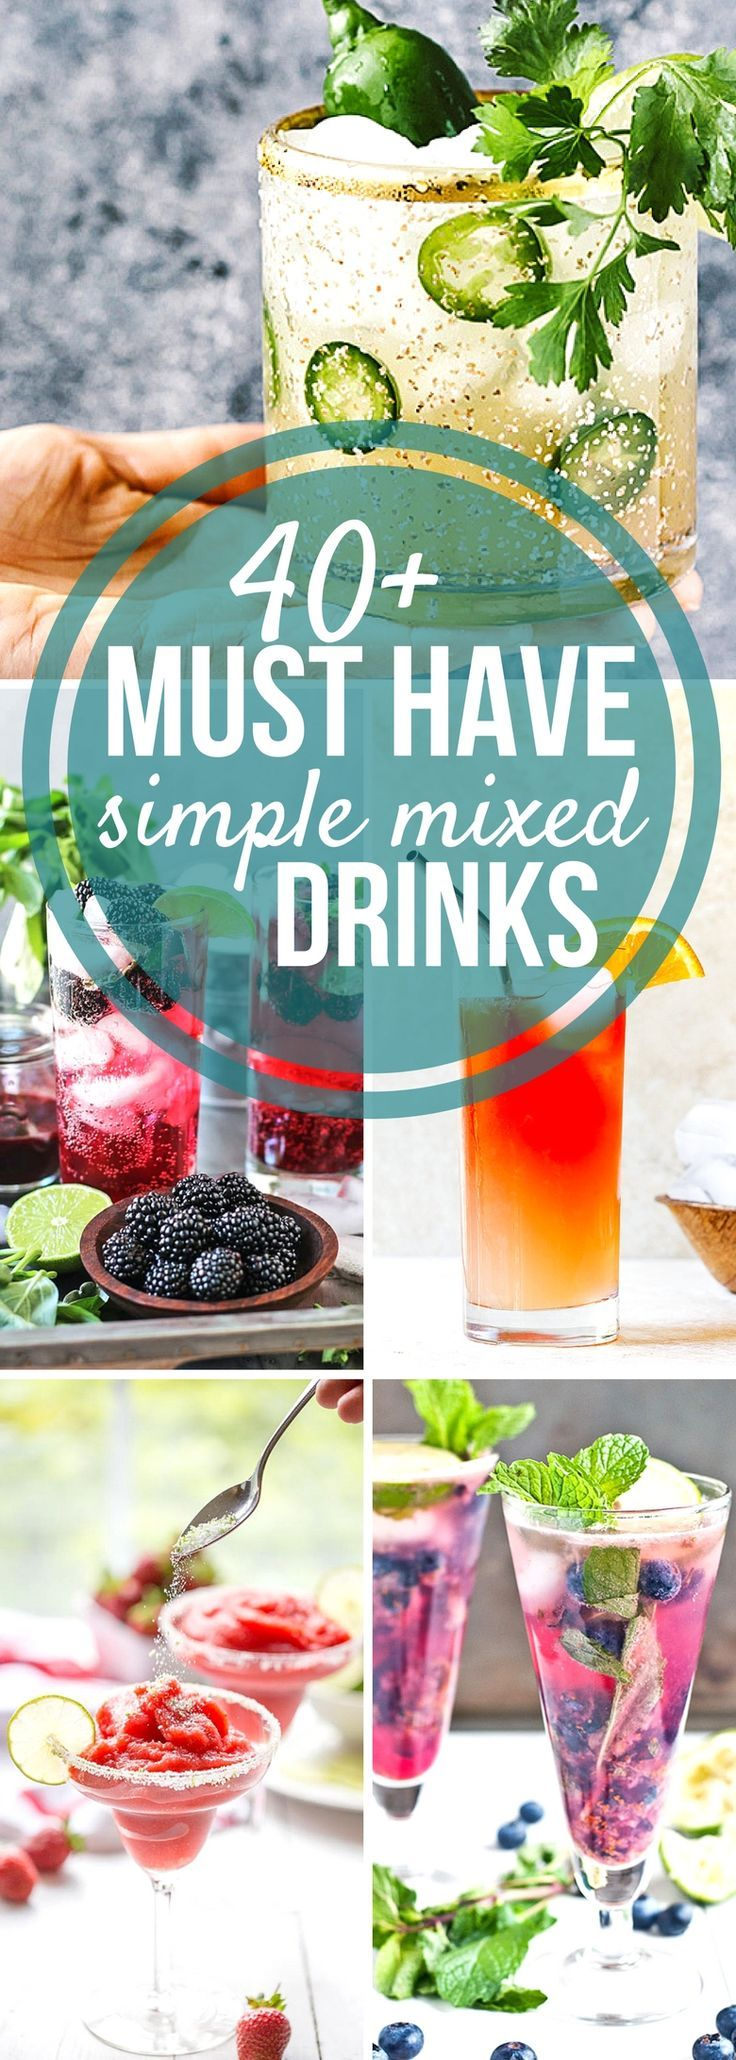 Simple Mixed Drinks you need right now for a refreshing summer. Learn how to make mixed drinks with this delicious collection #SundaySupper